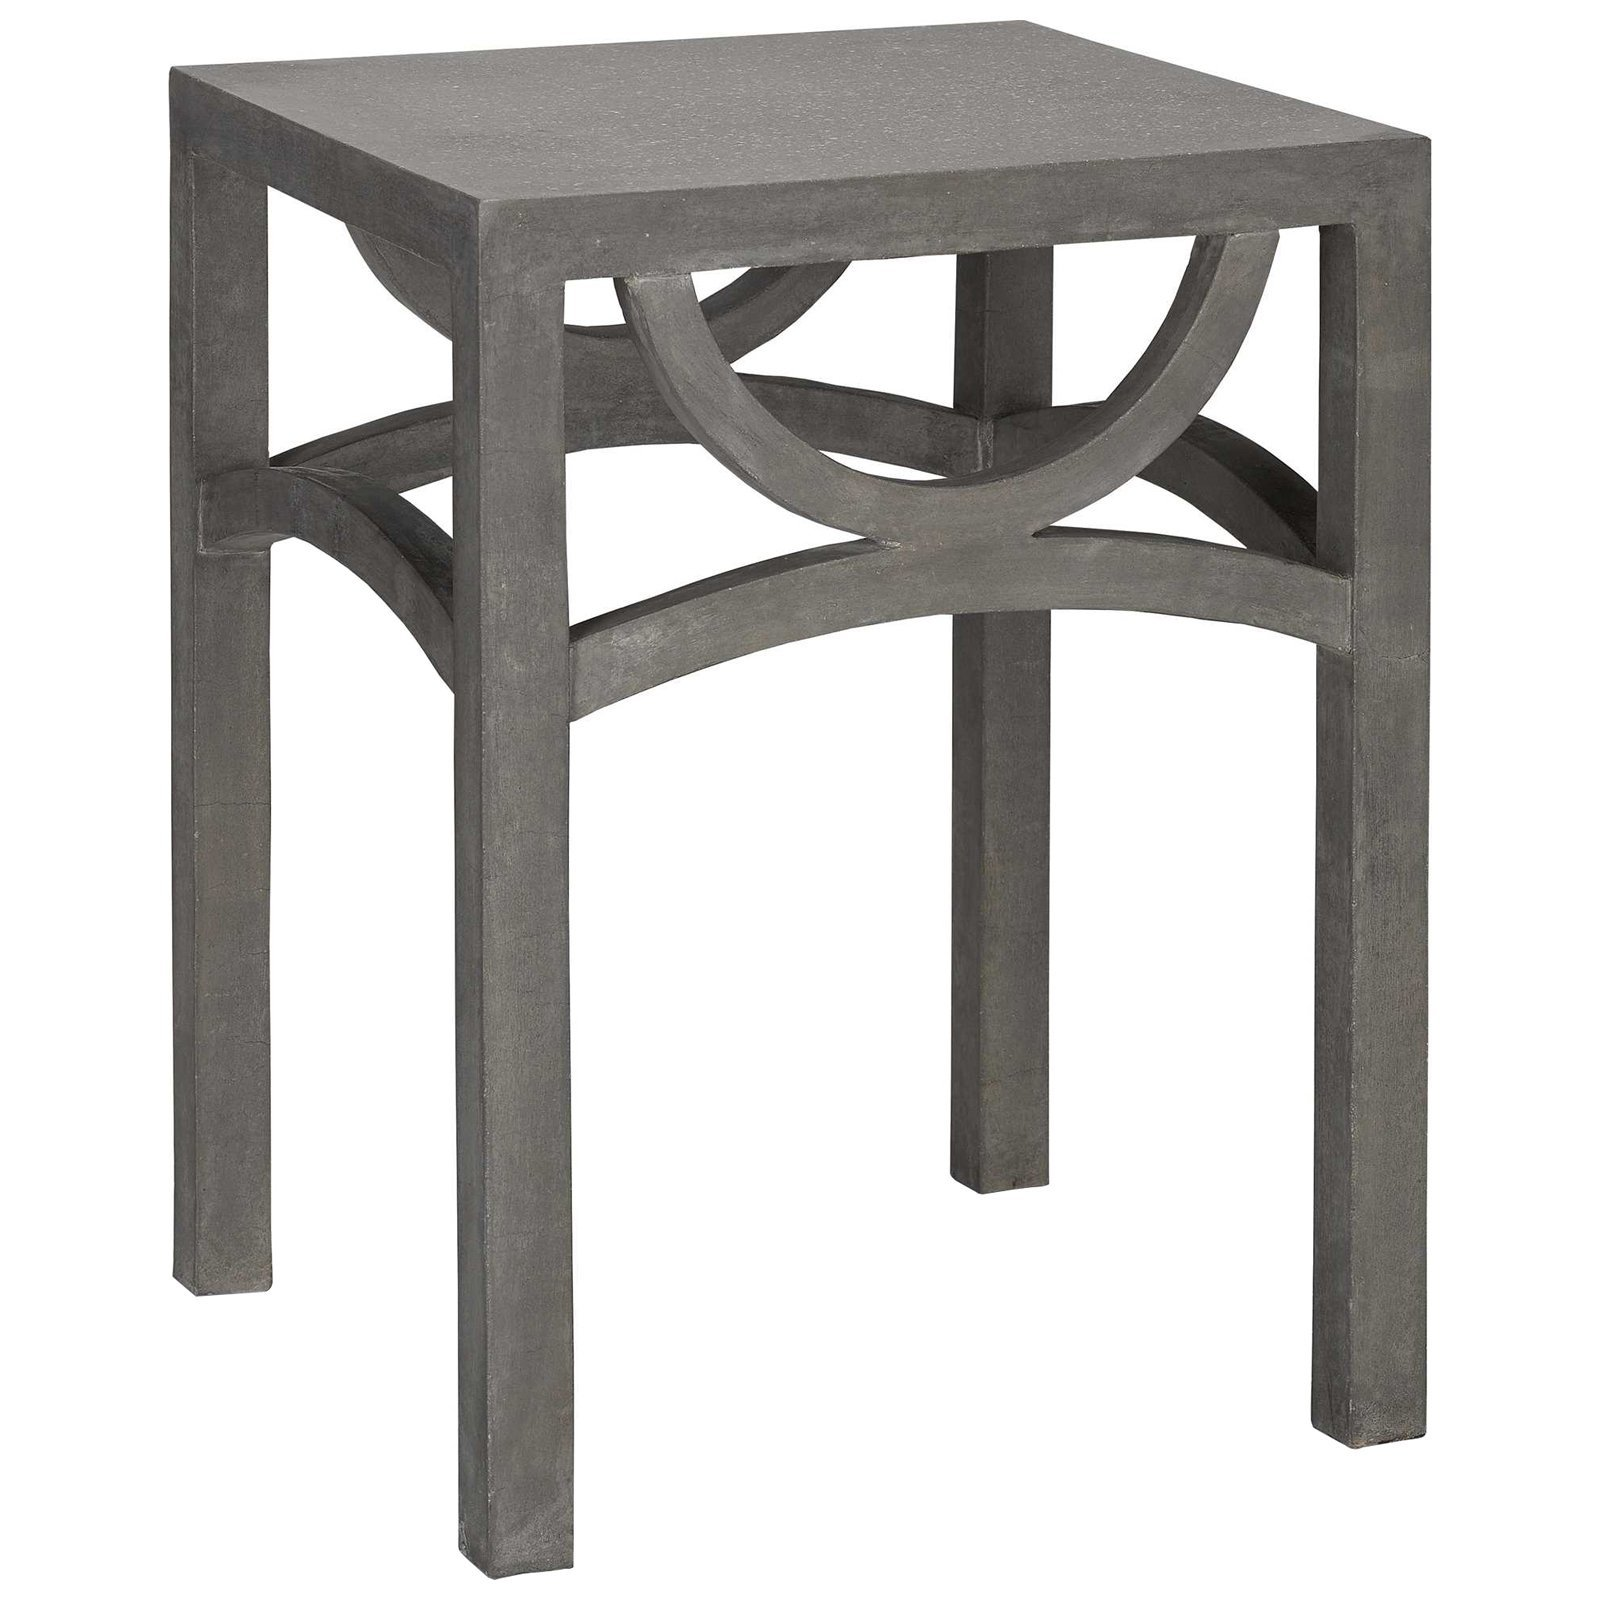 gray transitional accent tables side table metal dark colesden gold bookshelf counter height pub set quilted runners wine rack kitchen vintage acrylic coffee narrow hallway